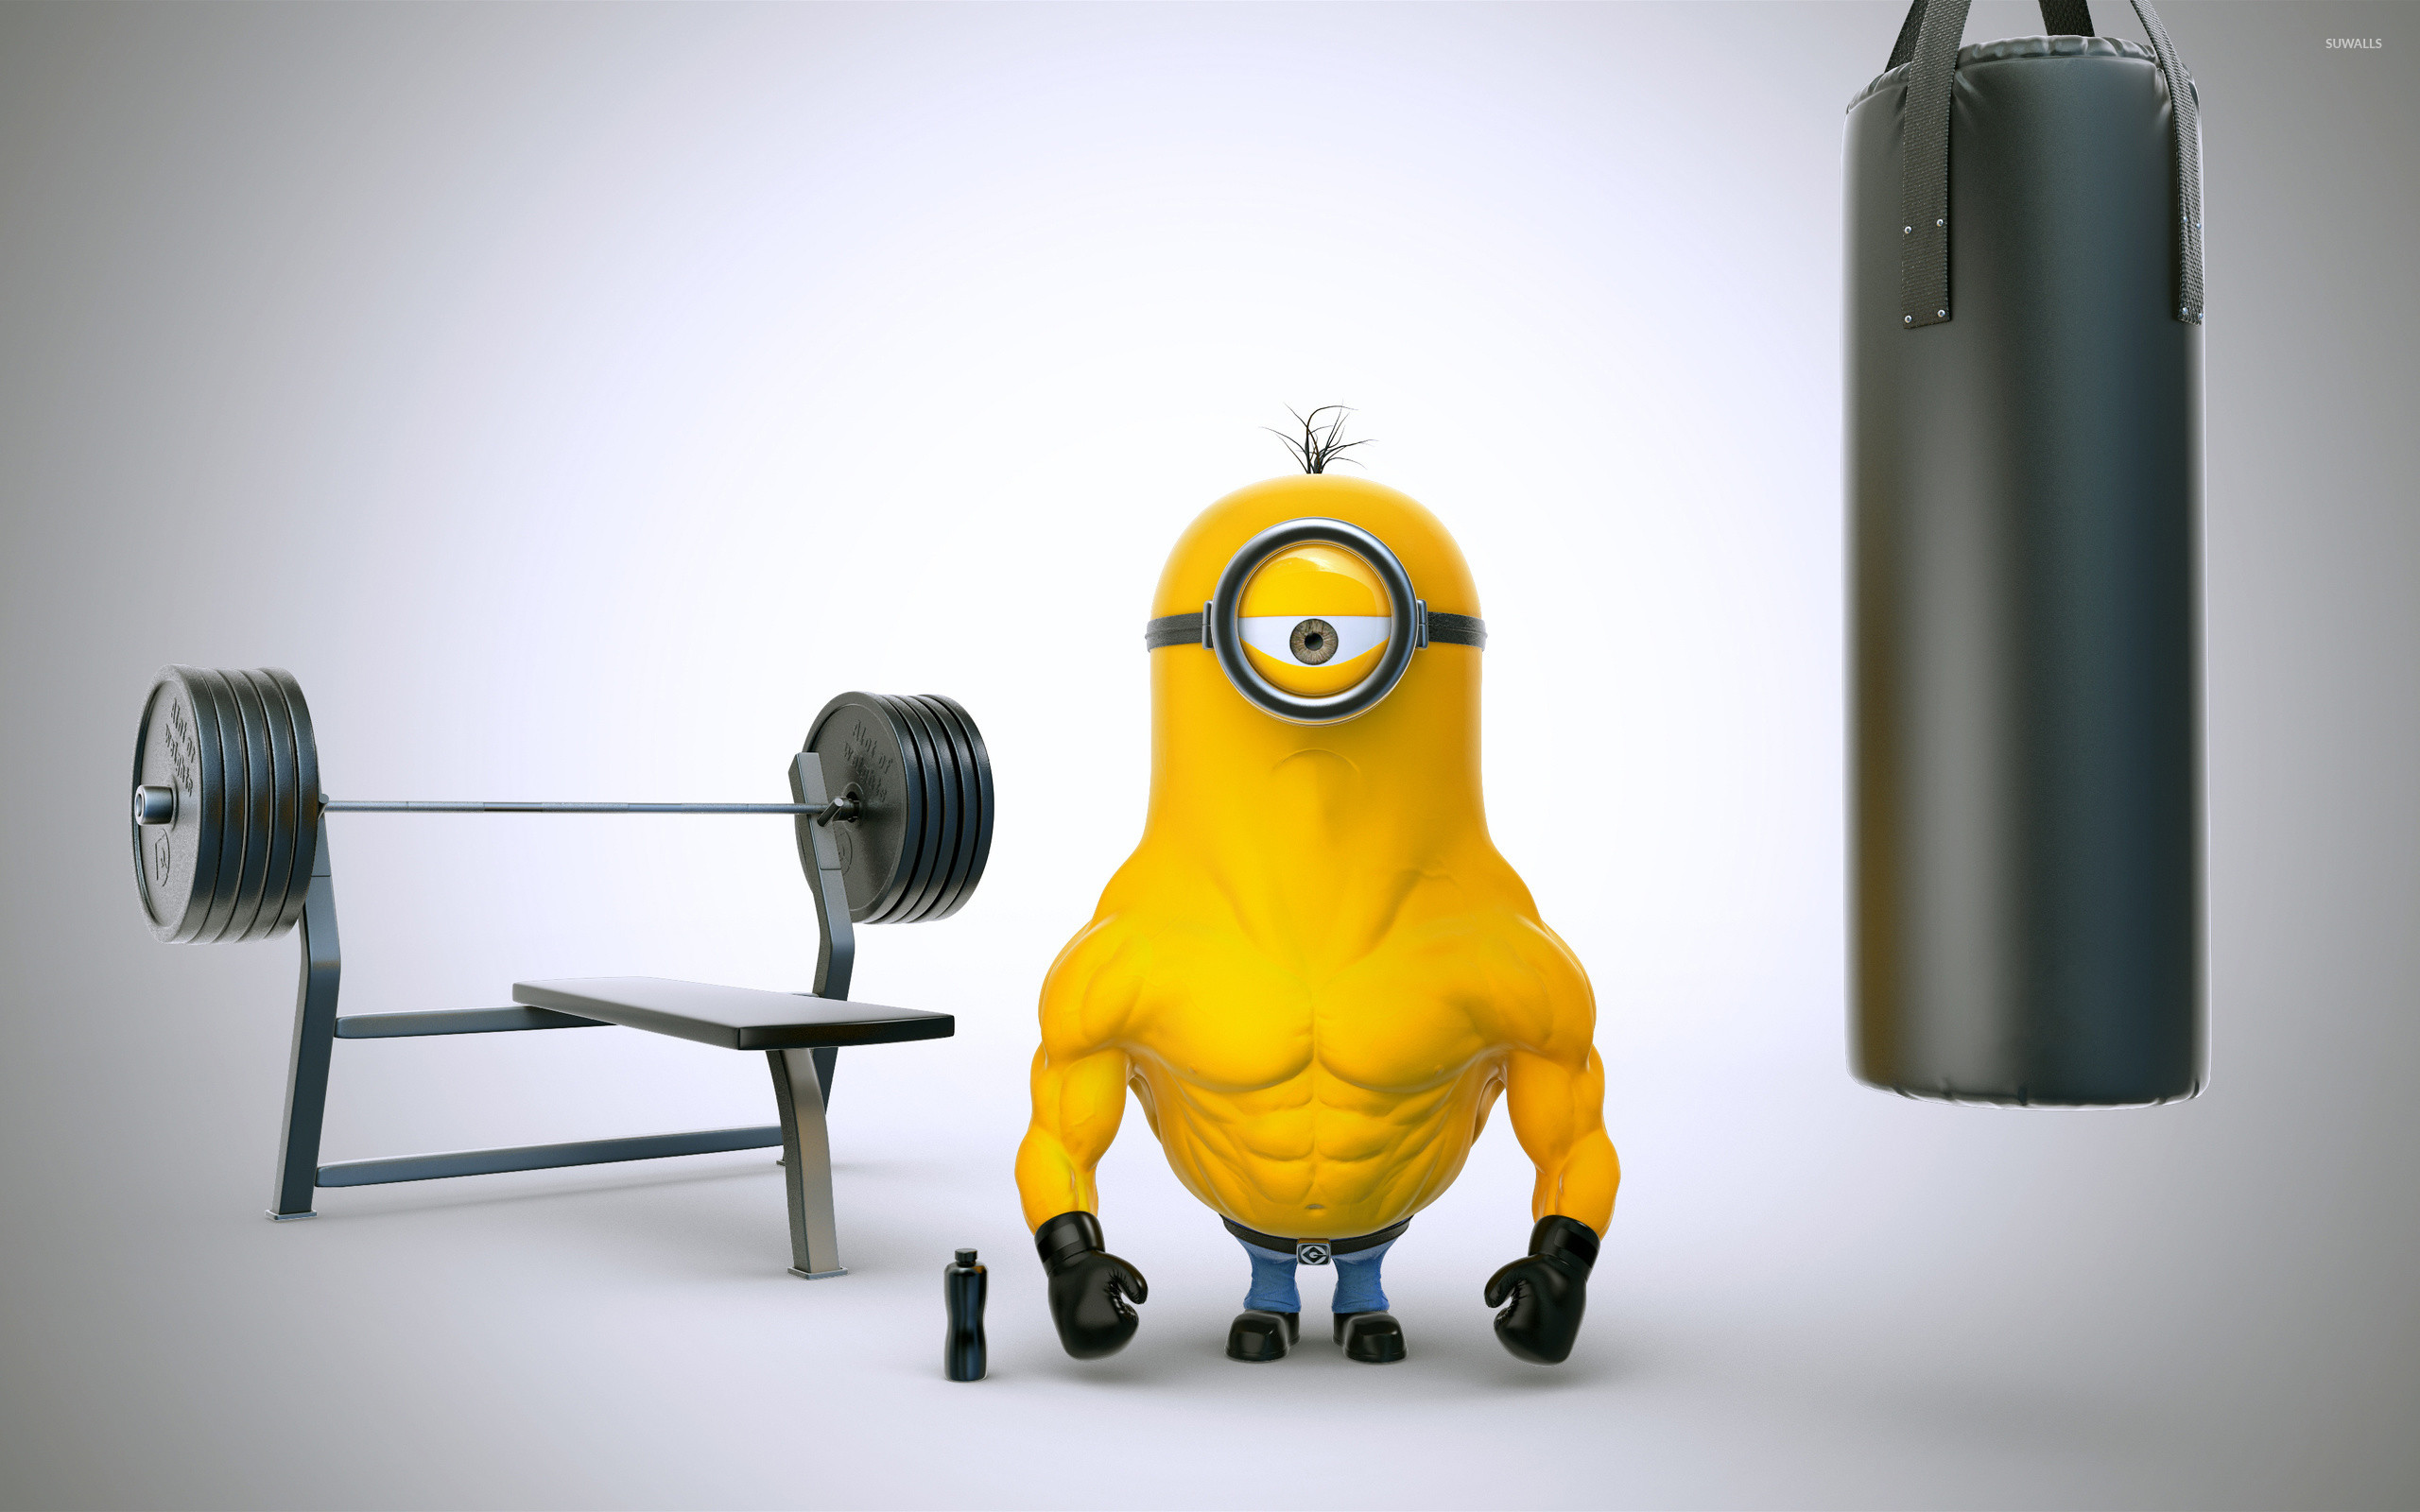 2560x1600 Minion with muscles wallpaper  jpg